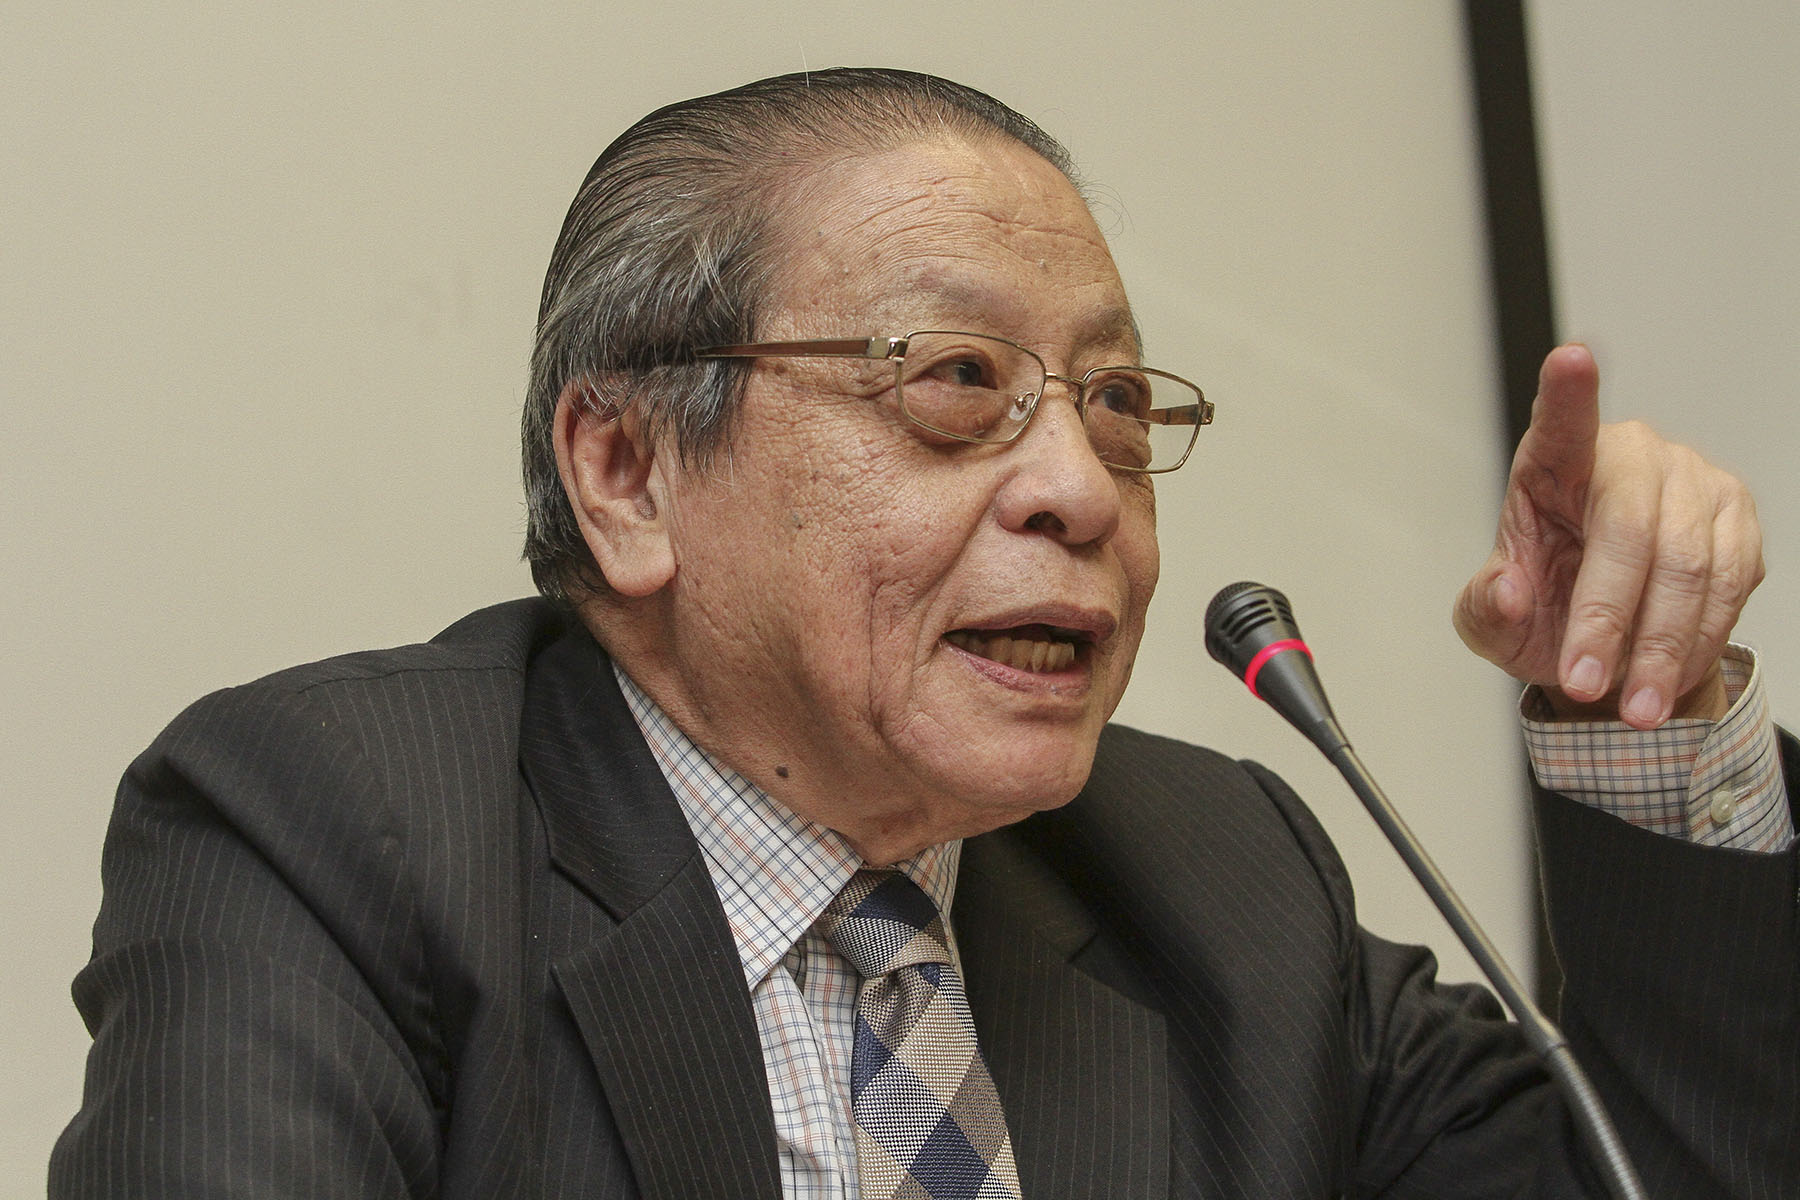 Lim Kit Siang claimed that the data used by the Education Ministry was not recognised by the Organisation for Economic Co-operation and Development that conducts the ranking. — Picture by Yusof Mat Isa